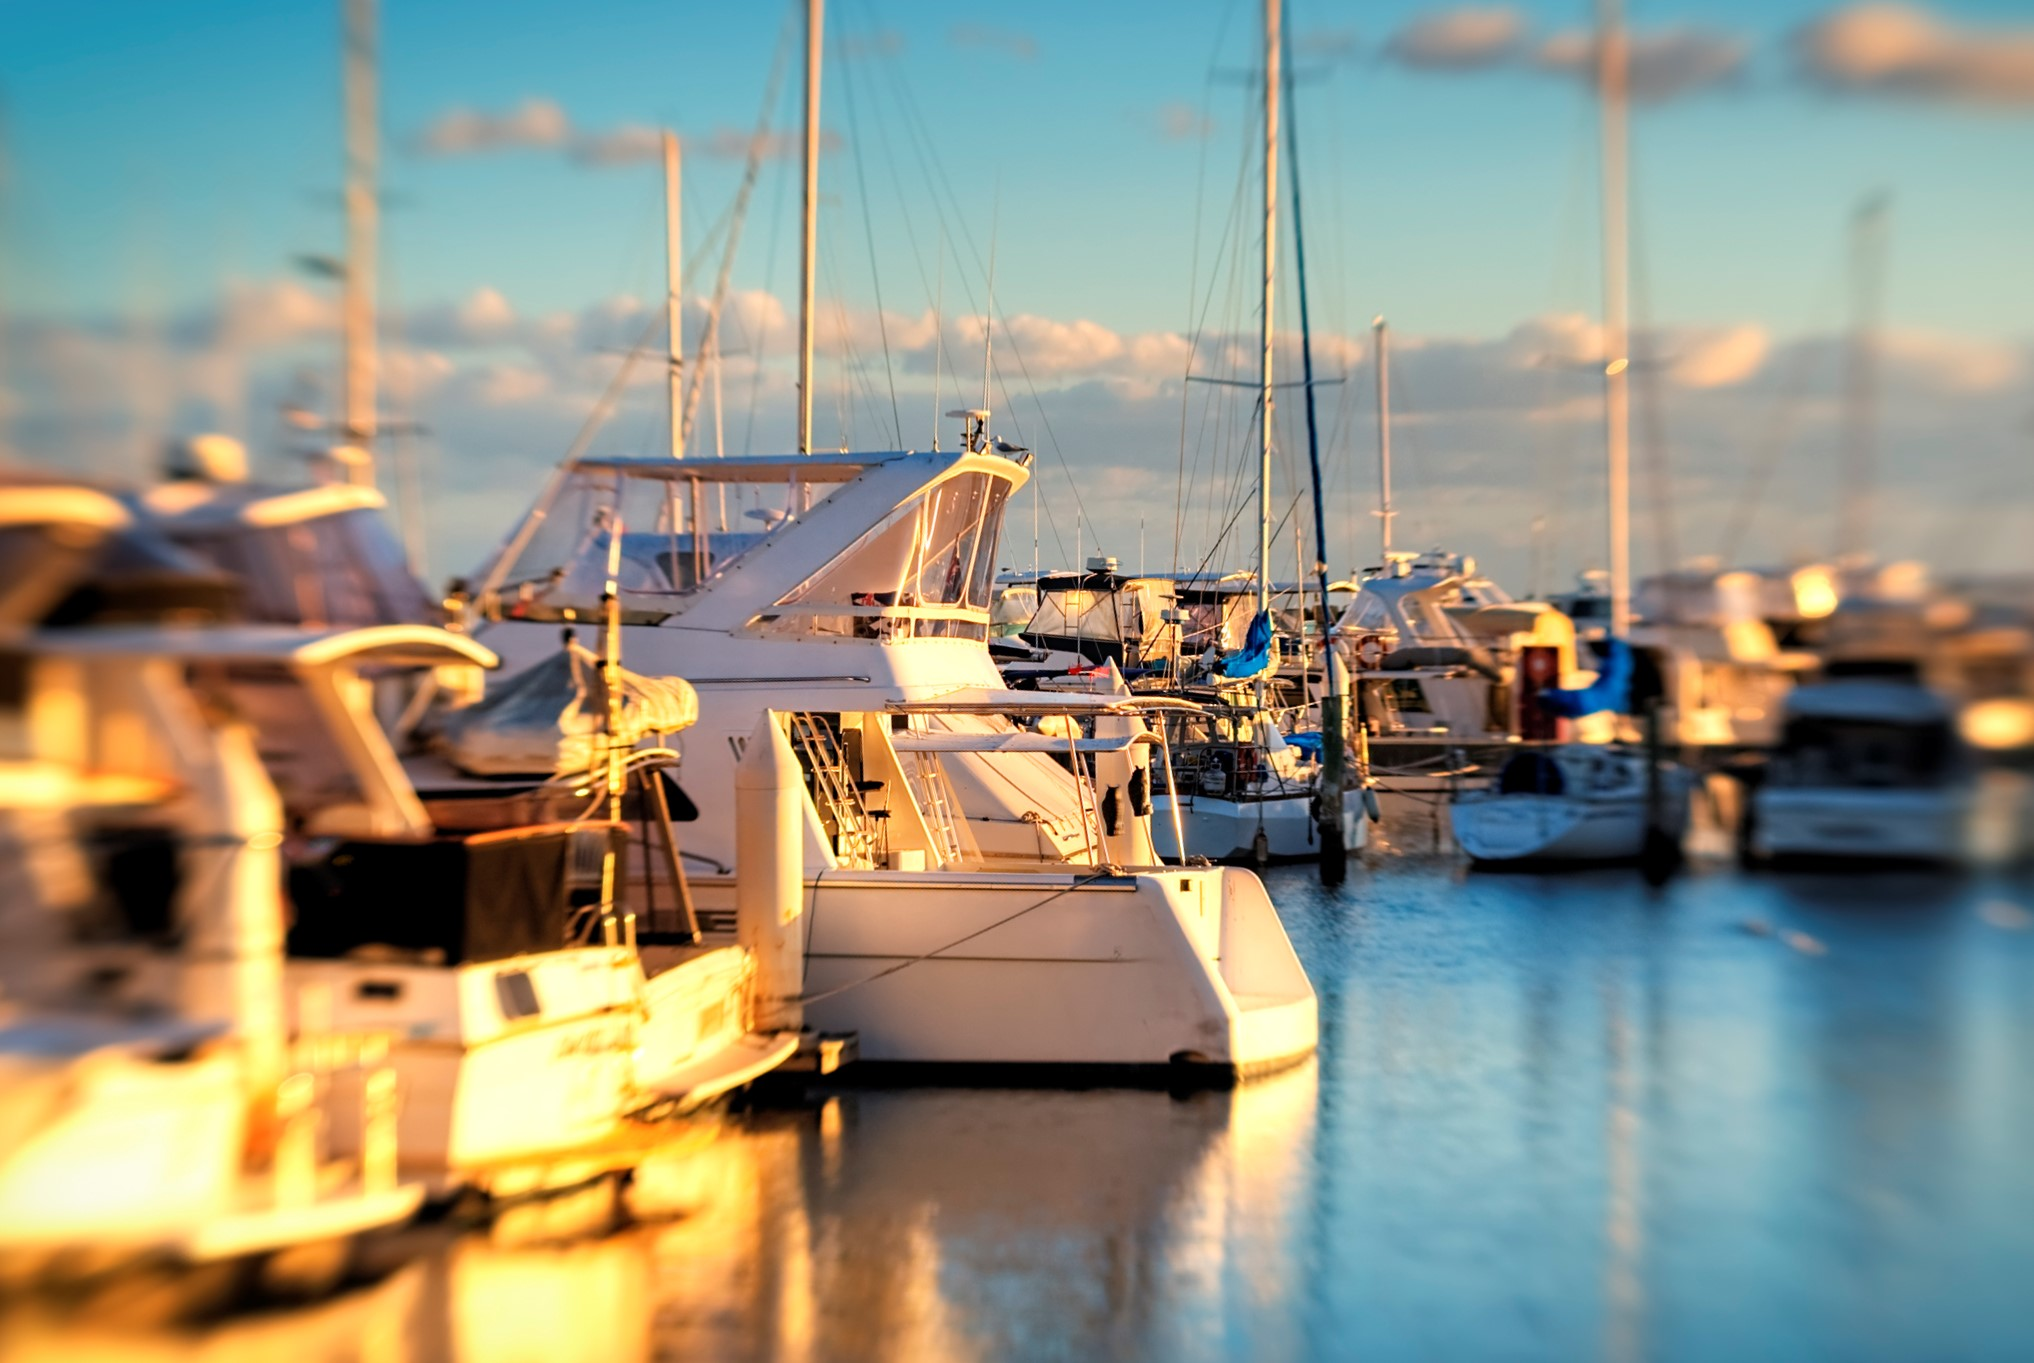 California Yacht Marina Wilmington offers Yacht Parking Service